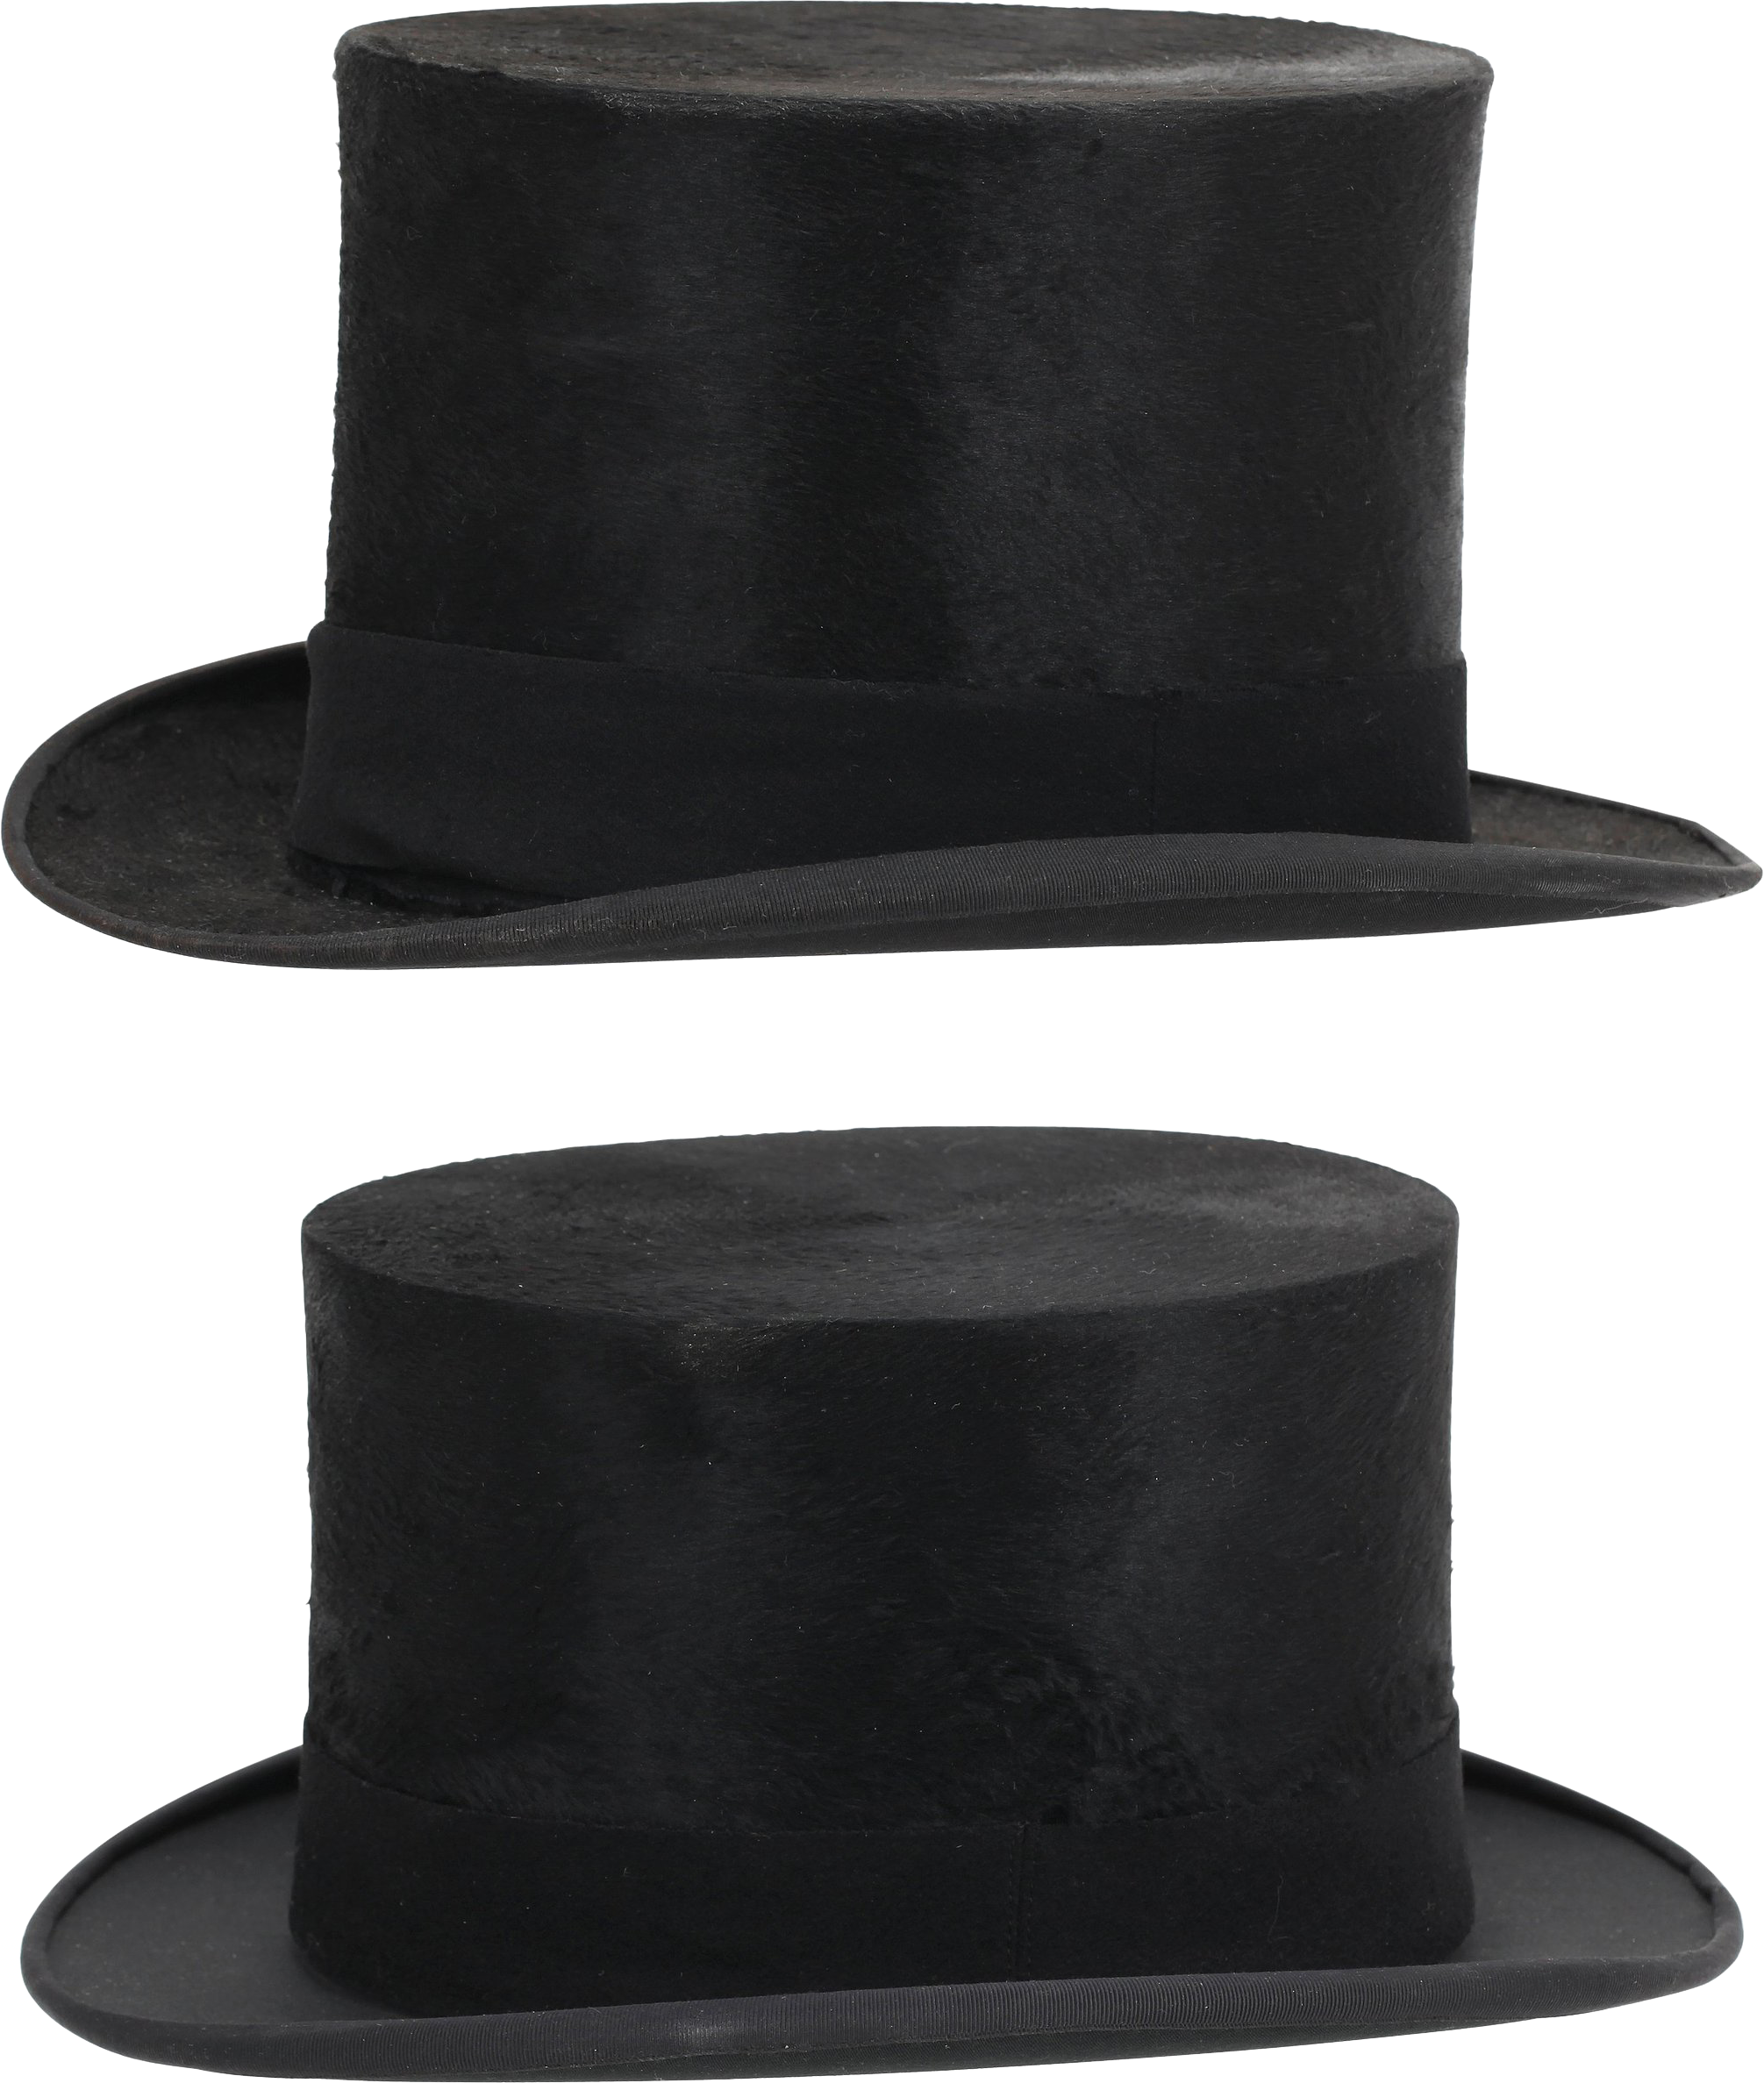 Two Black Hat PNG Image